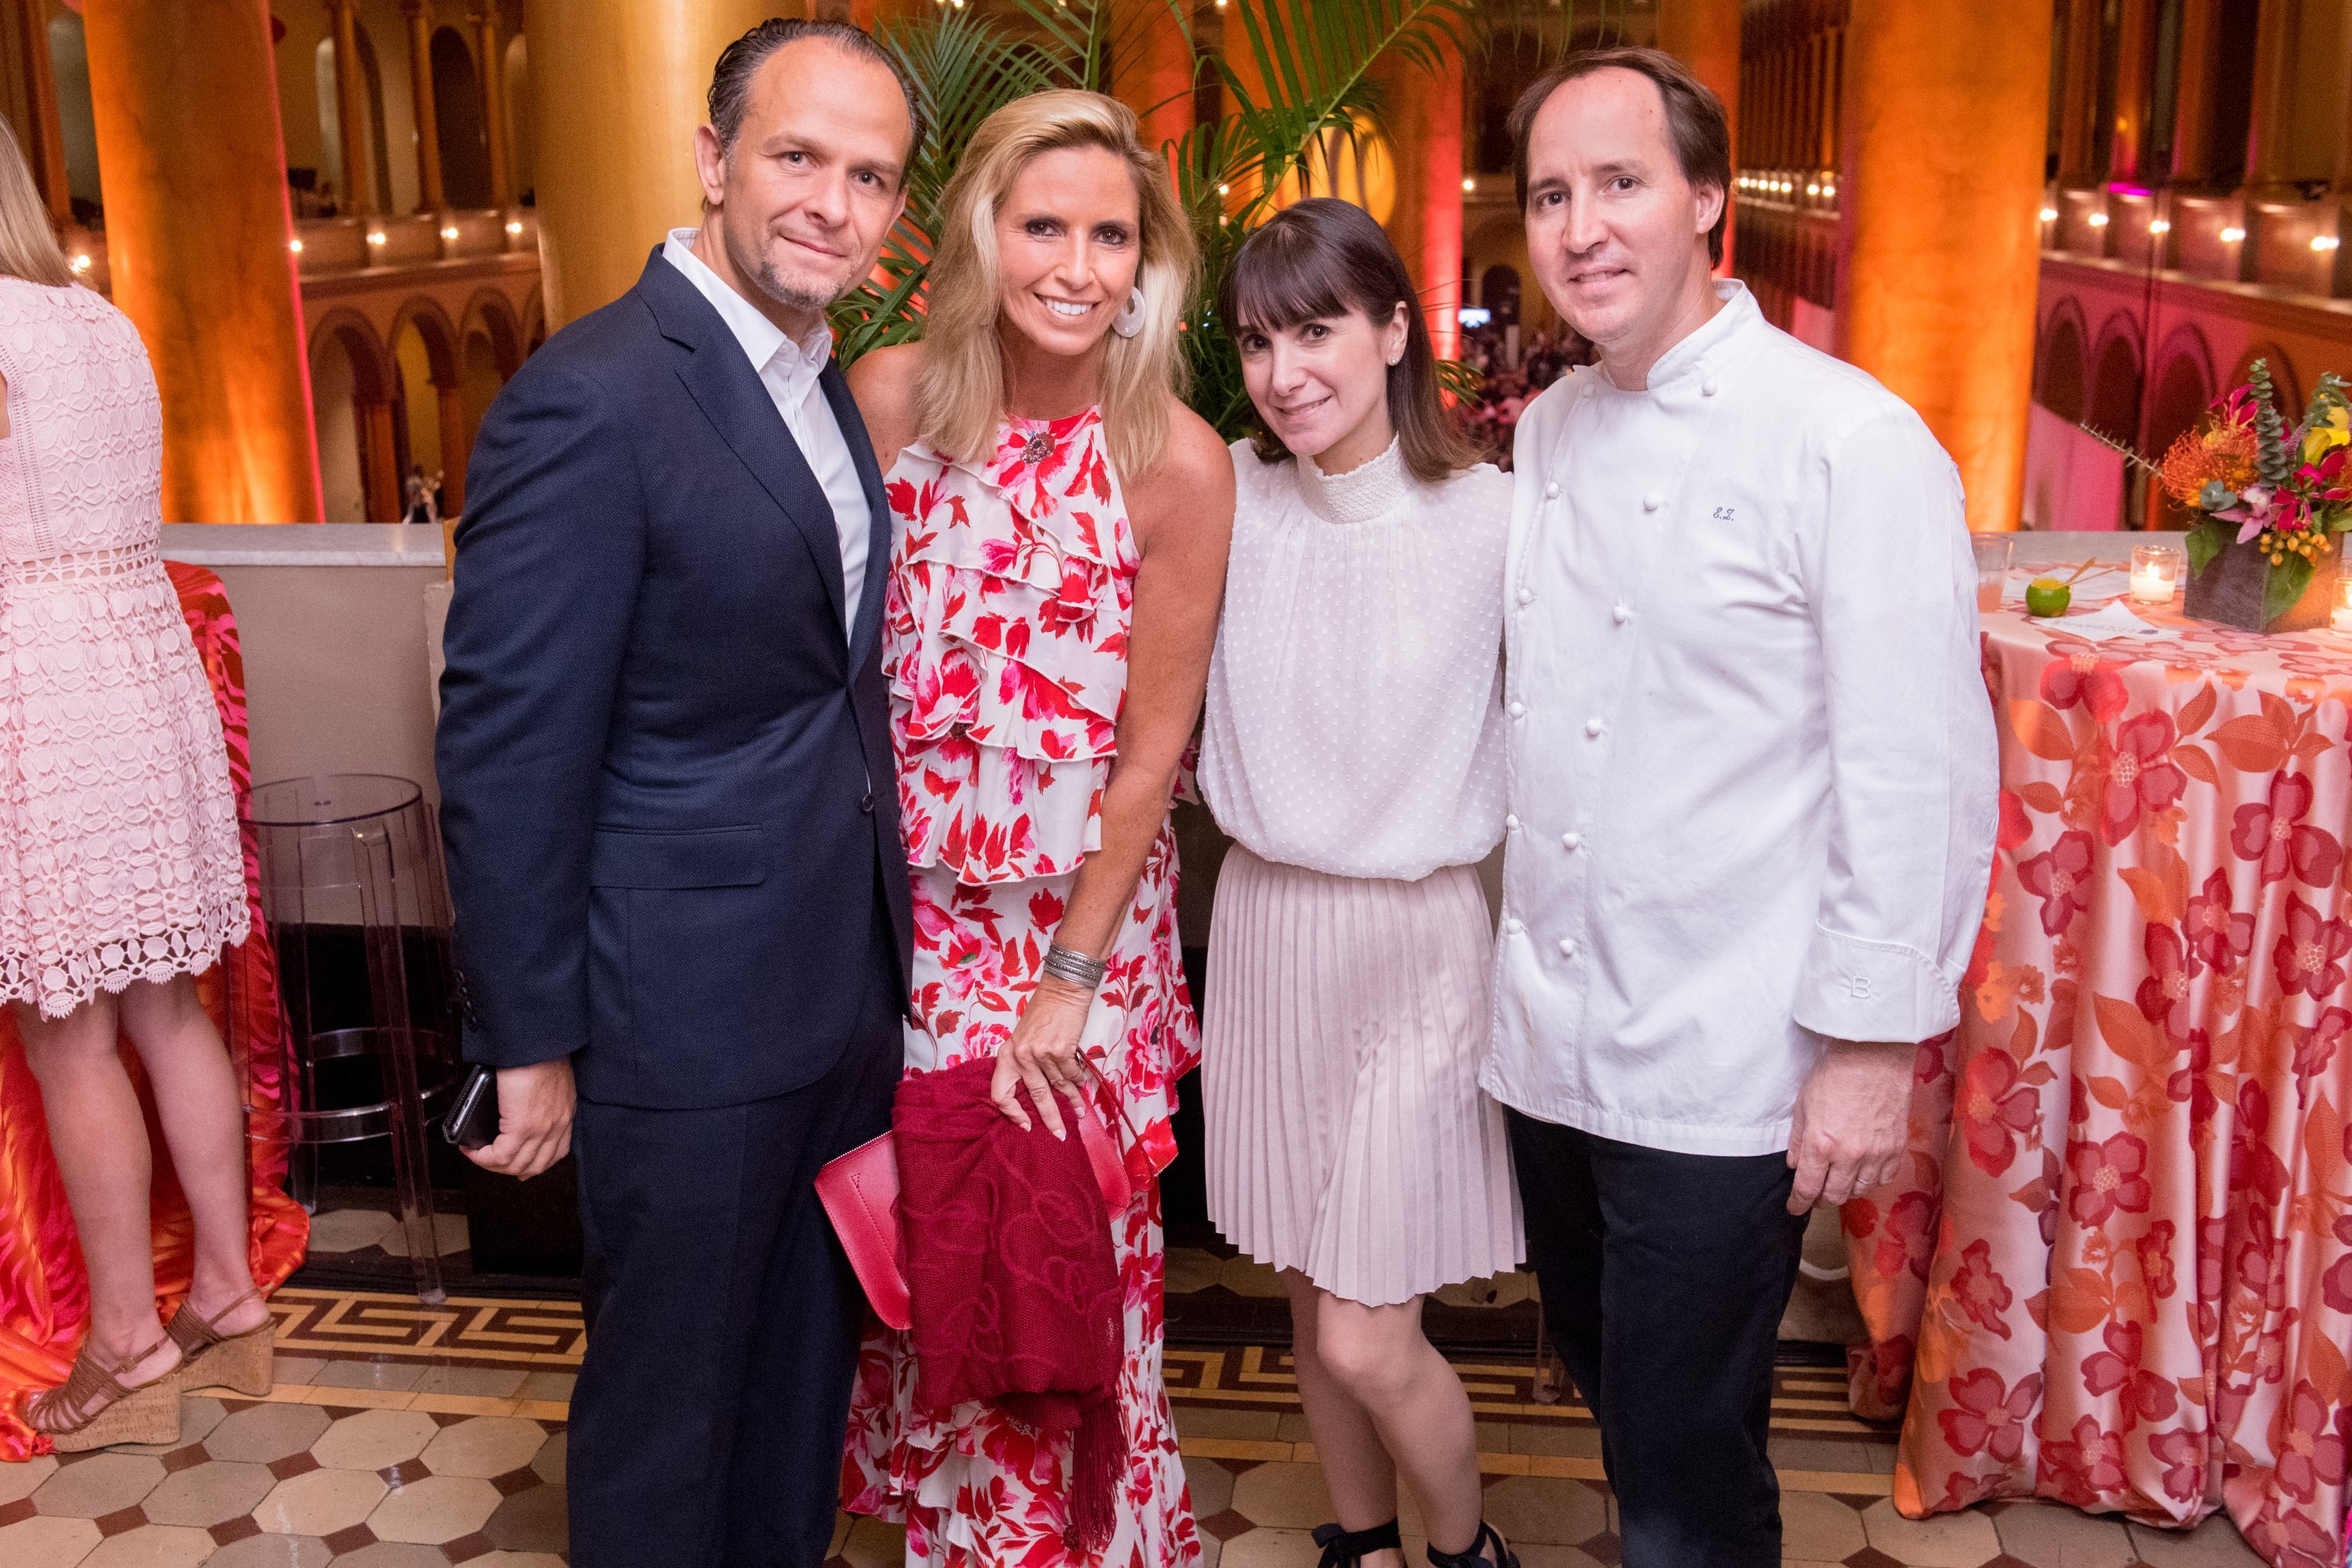 Photos from the 2018 AT&T Best of Washington Party images 29